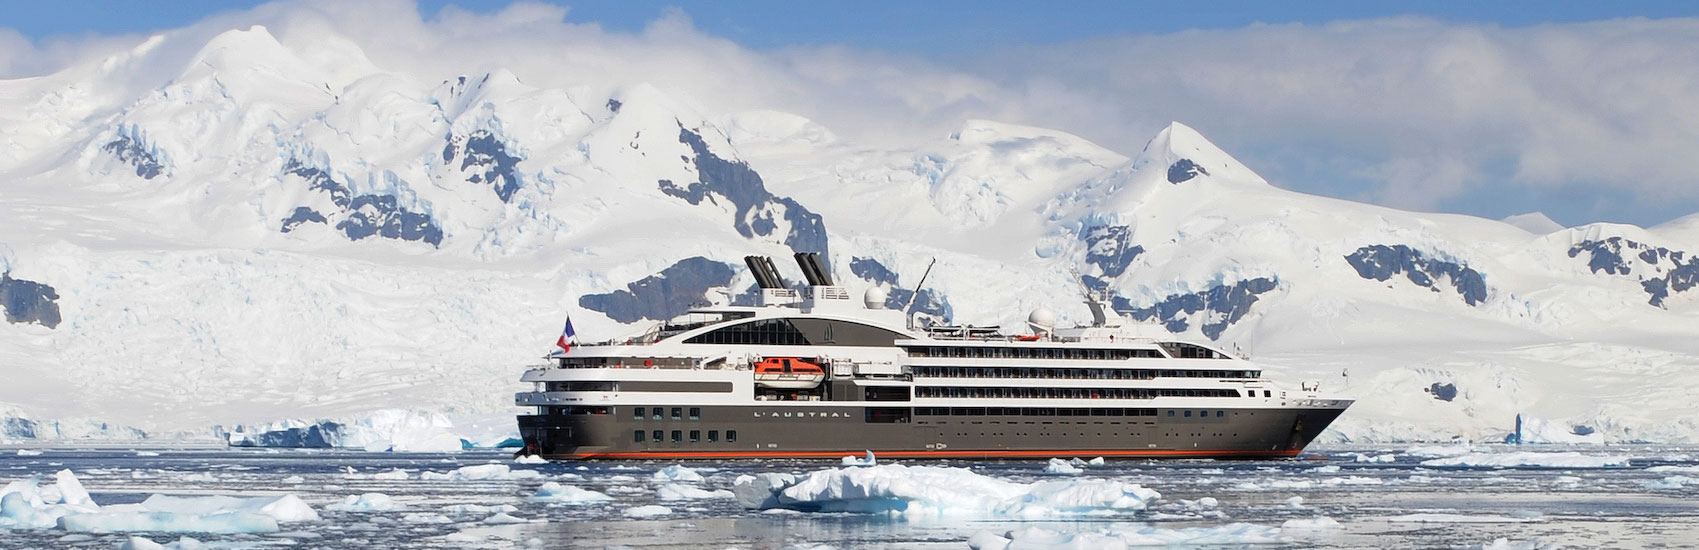 Air Credit Offer with Ponant to Antarctica 5